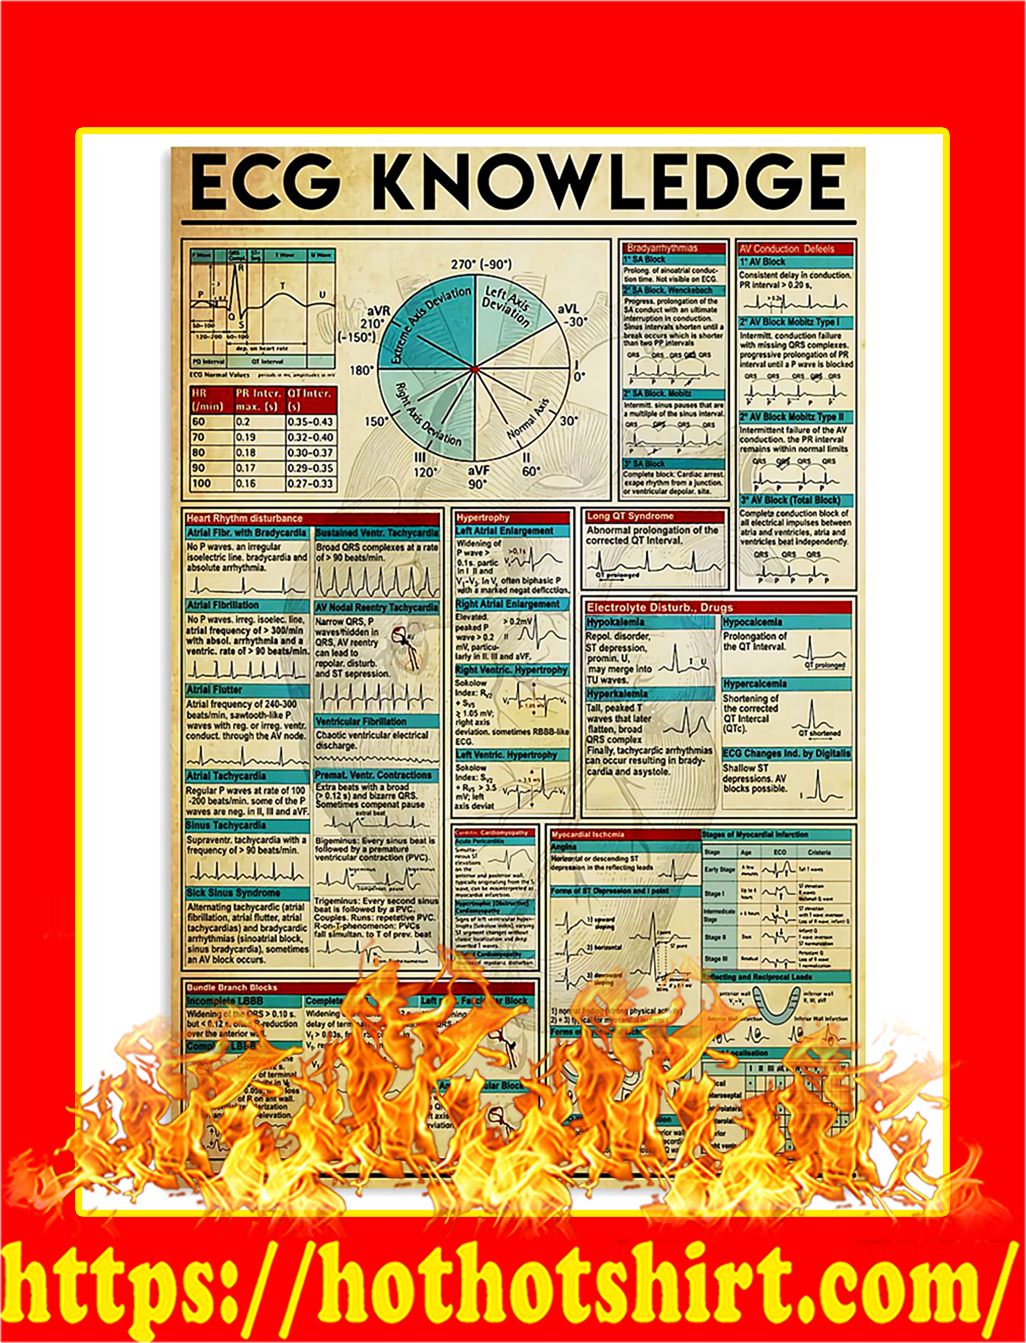 ECG Knowledge Poster - A3